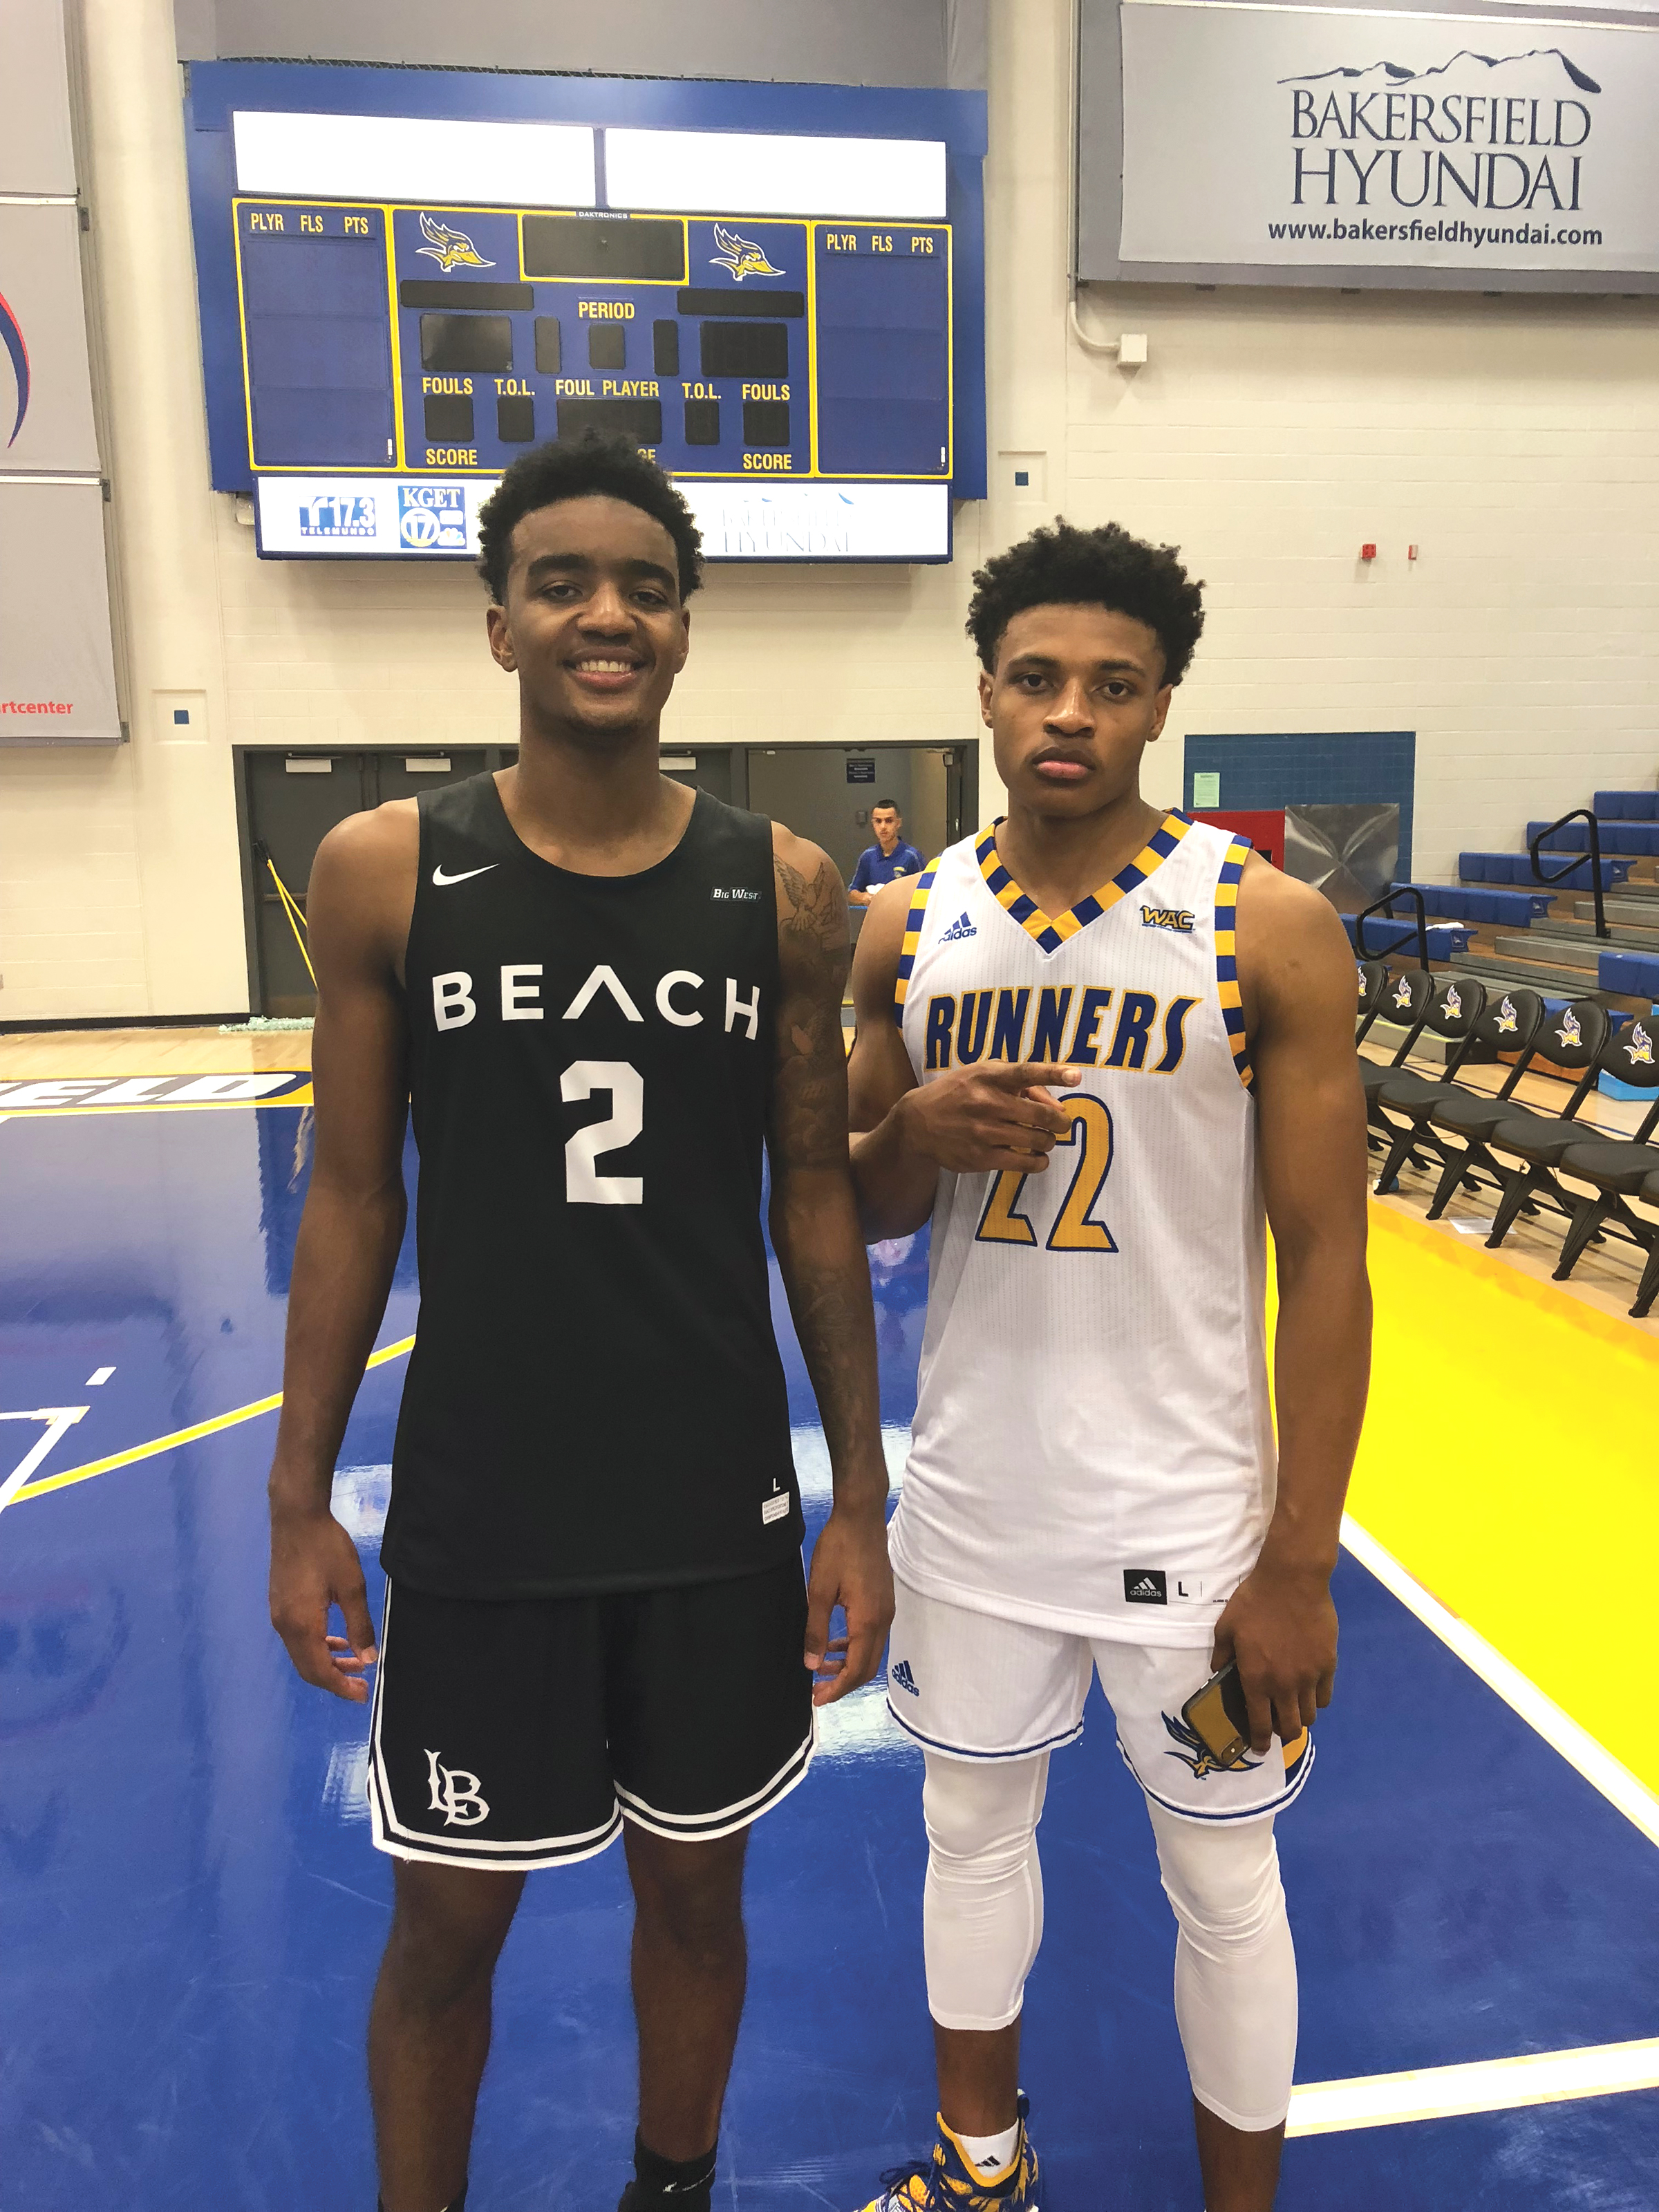 Local products Jordan Roberts (left) and Justin McCall (right) share a moment after Roberts Long Beach State basketball team edged out McCall's Cal State Bakersfield team 73-70. (Bakersfield News Observer photo)